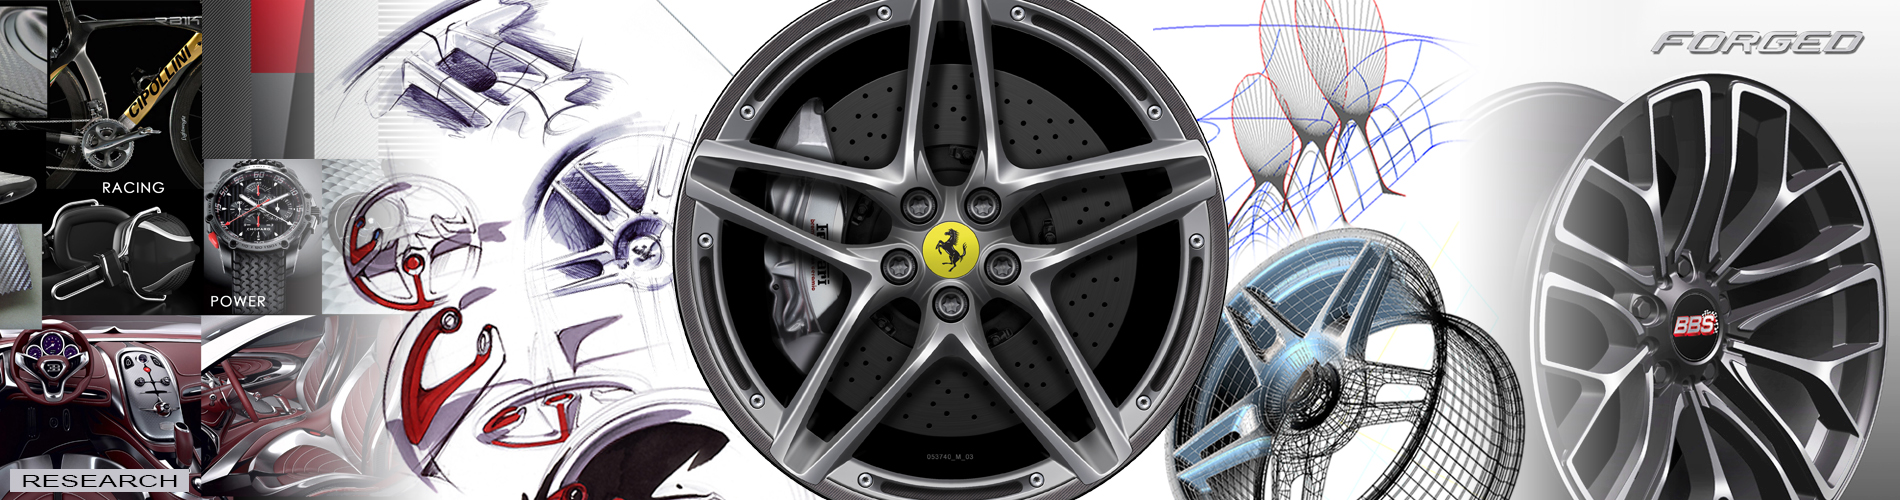 You see a Ferrari wheel and a Forged BBS wheel which were created by Vitovision as well as different CAD design sketches for watches and vehicles and other possibilities of automotive design